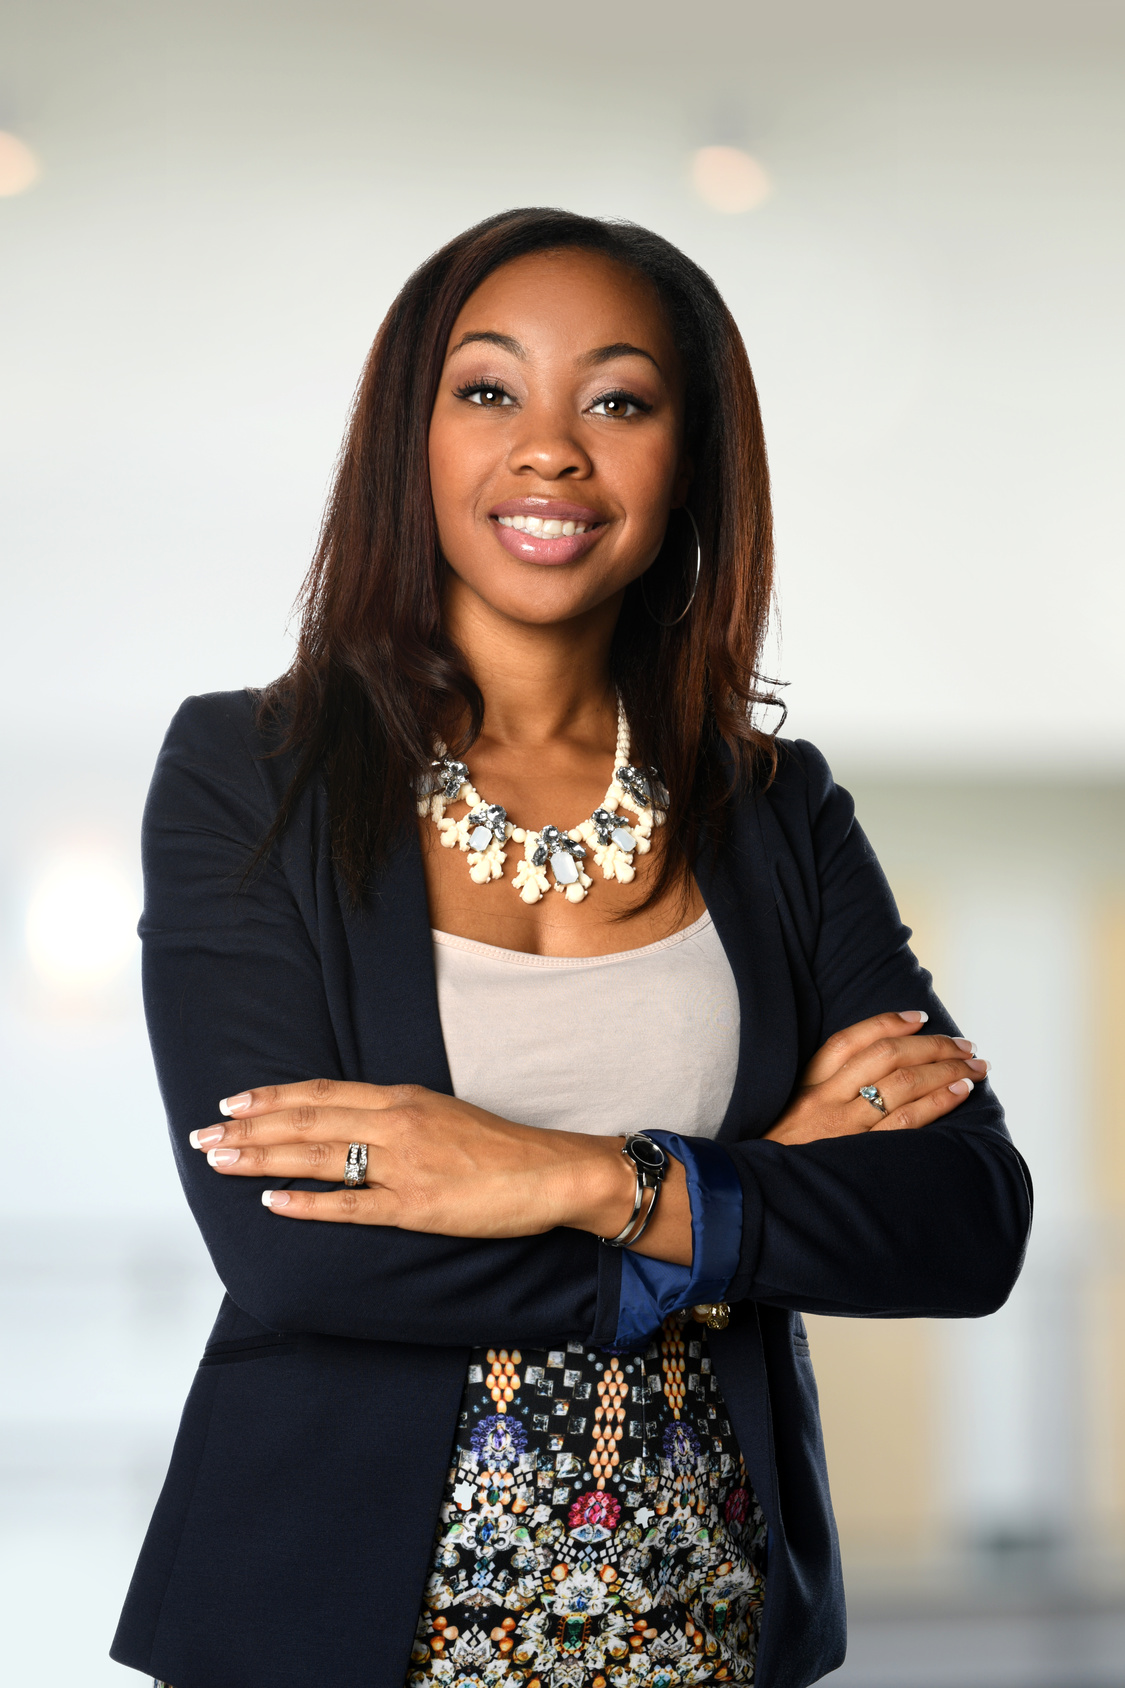 Beautiful African American woman with arms crossed inside office building